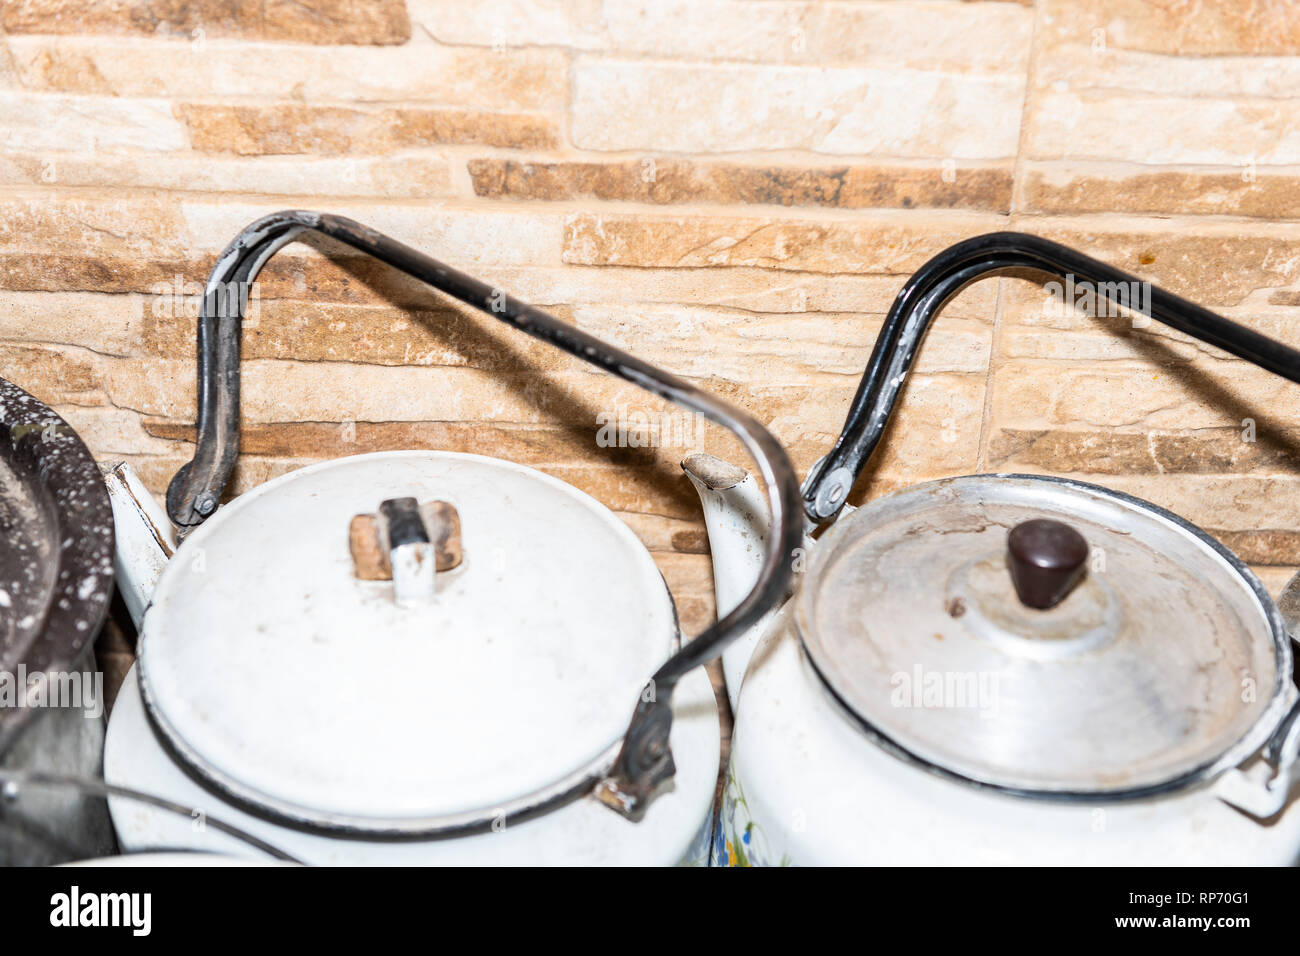 Closeup of many large pots and pans kettle teapots lids on rustic dacha country home or house cottage kitchen stove with dirt - Stock Image